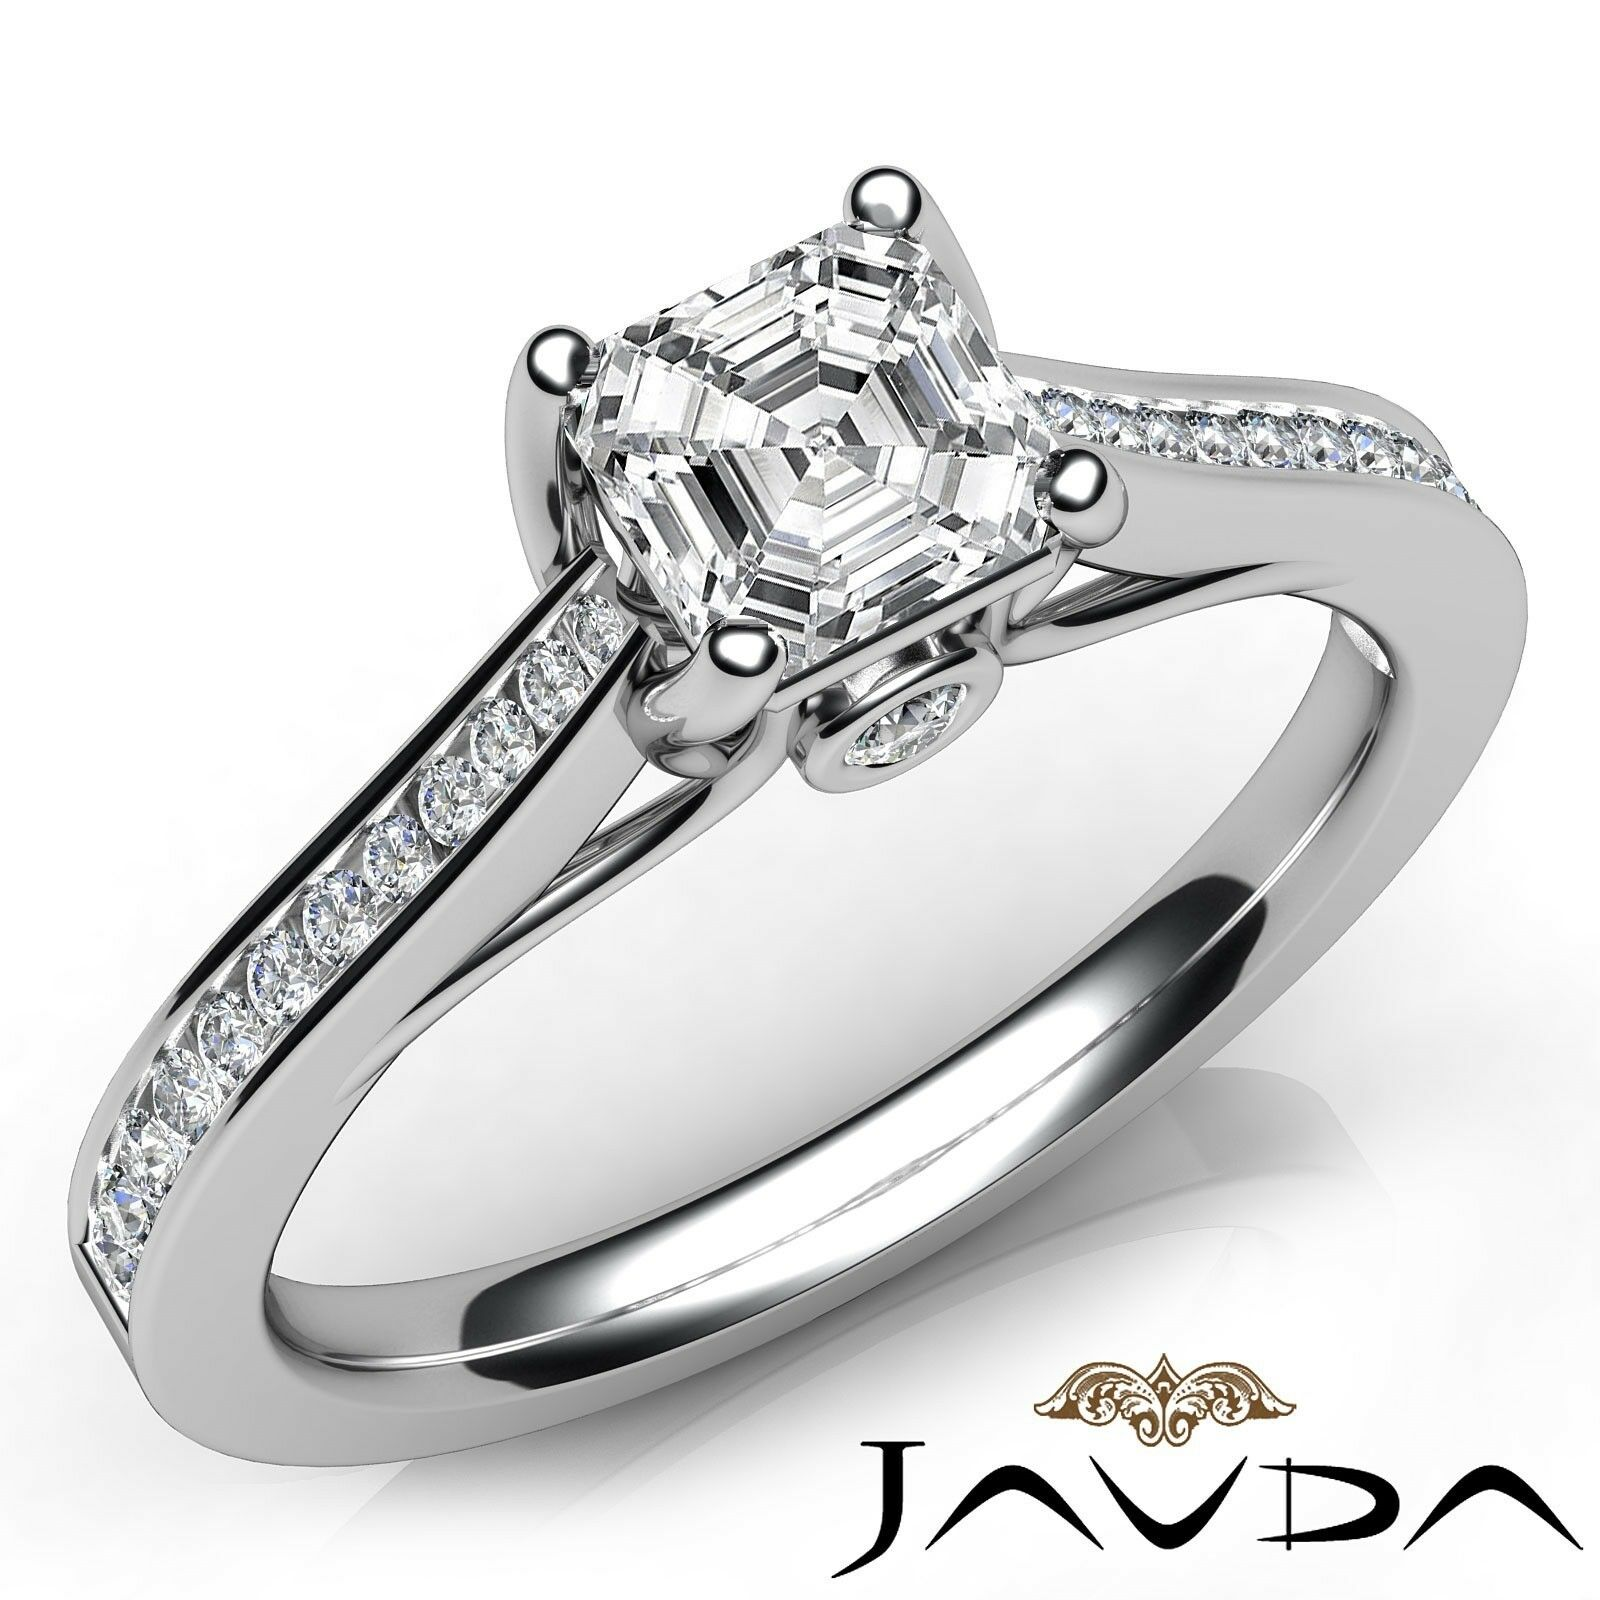 1ctw Tapered Pave Asscher Diamond Engagement Ring GIA F-VS2 White Gold Women New